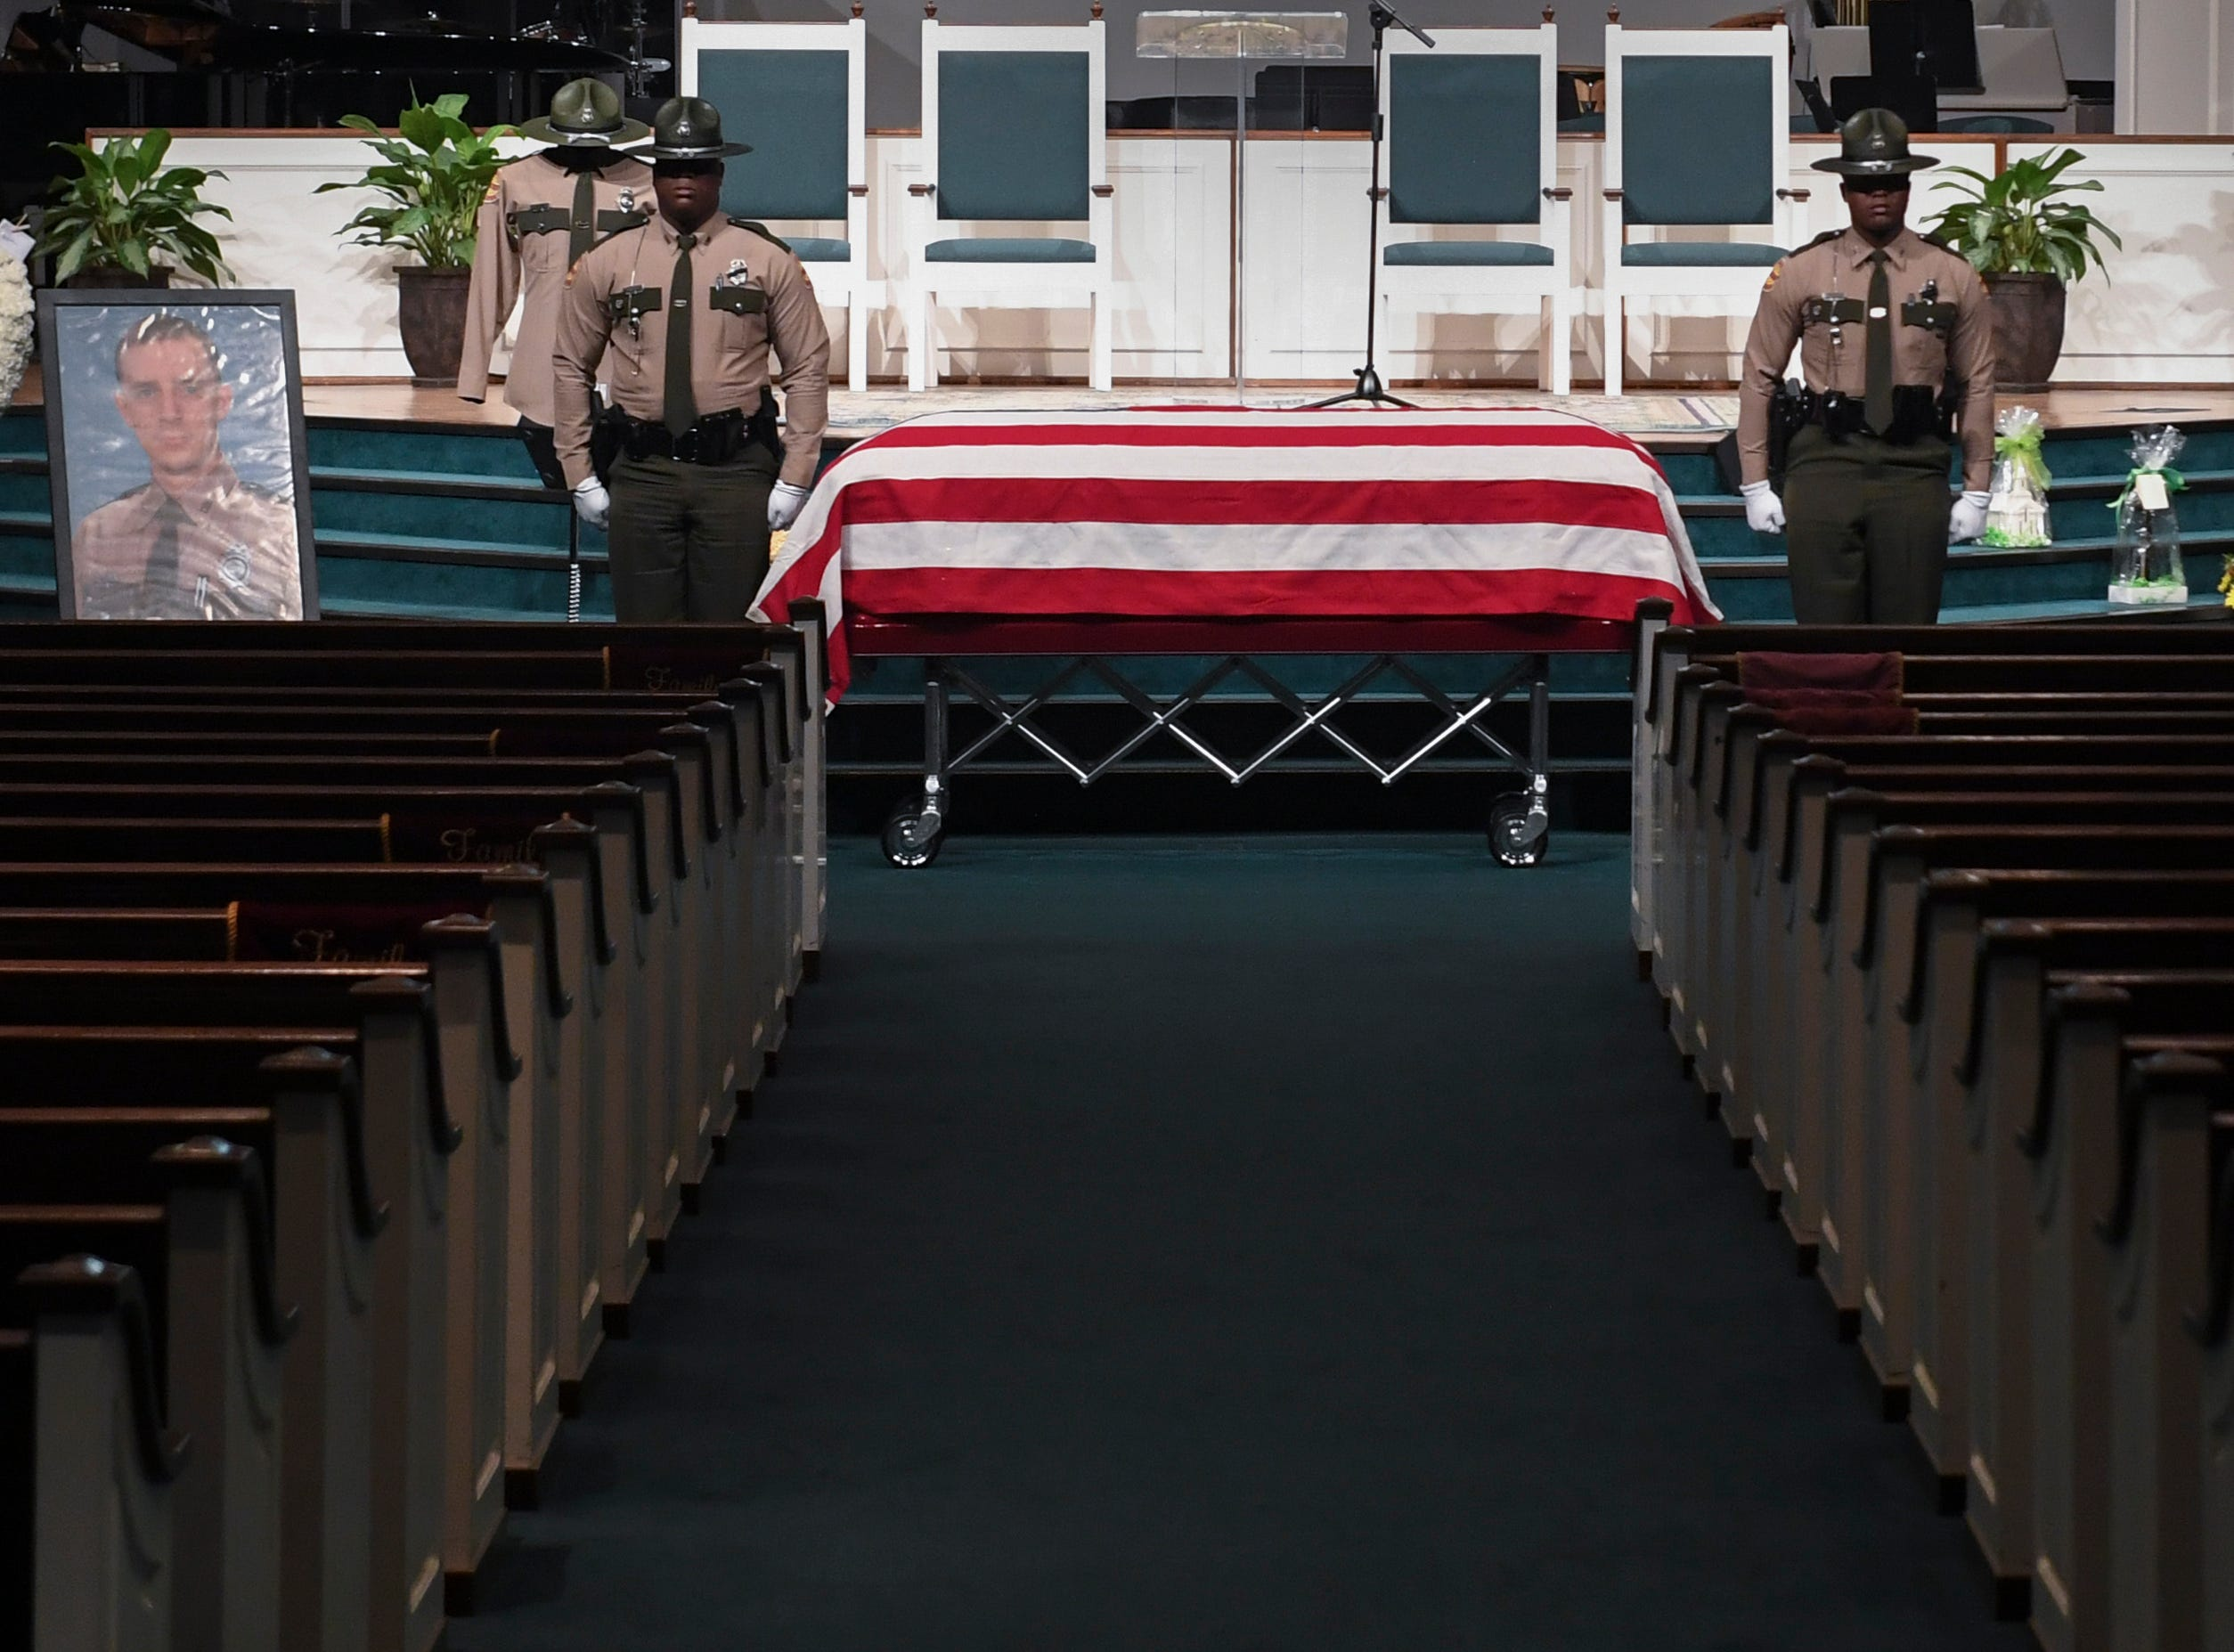 Tennessee State Troopers stand guard next to the casket before the funeral service for Tennessee State Trooper Matthew Gatti at West Jackson Baptist Church in Jackson, Tenn., Monday, May 13, 2019. Gatti died in the line of duty in an accident while responding to a car fire on I-40 in Madison County on May 6.